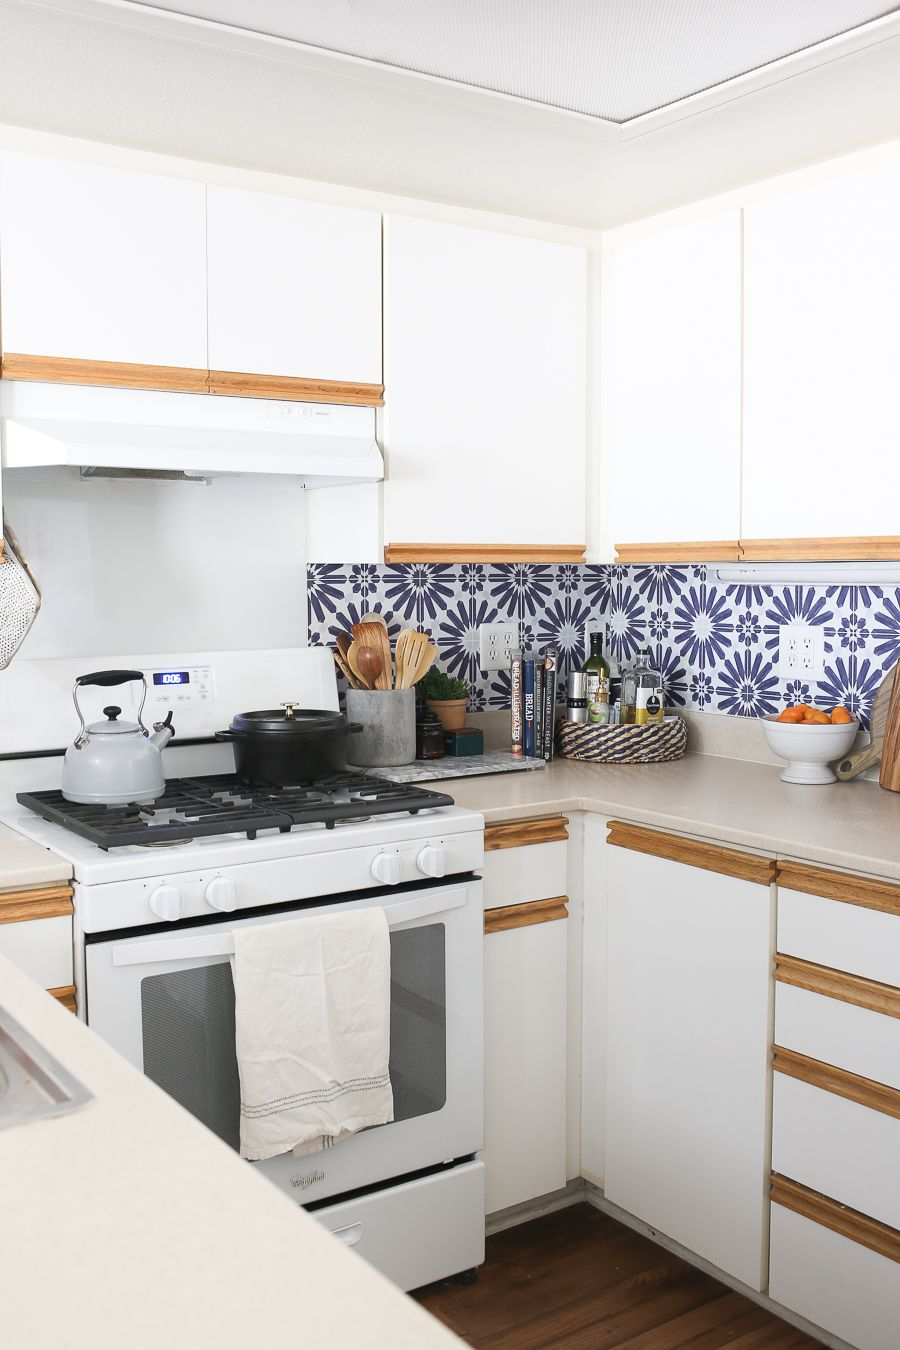 How To Add A Peel And Stick Kitchen Backsplash In A Rental In 2020 Kitchen Design Small Removable Wallpaper Kitchen Kitchen Backsplash